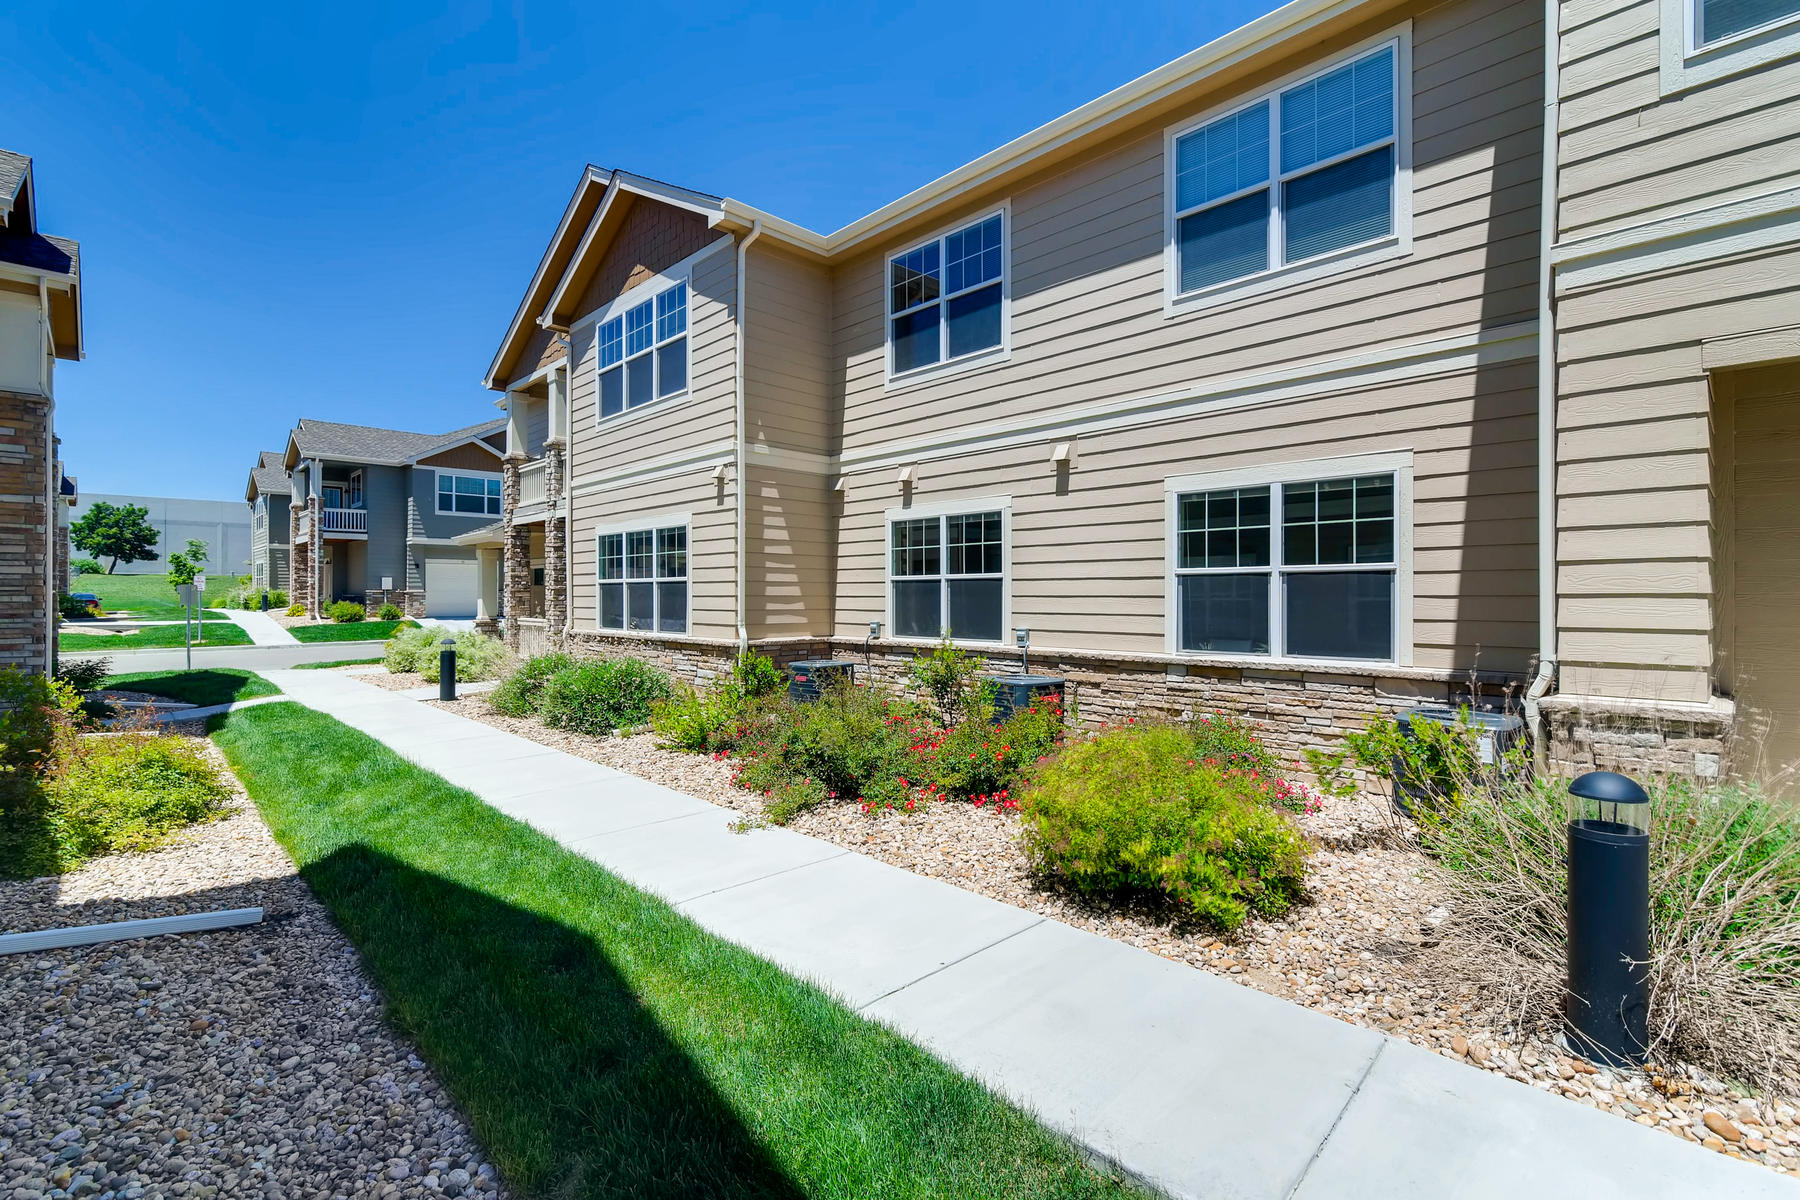 6915 W 3rd St Unit D1414-032-029-Exterior Side-MLS_Size.jpg